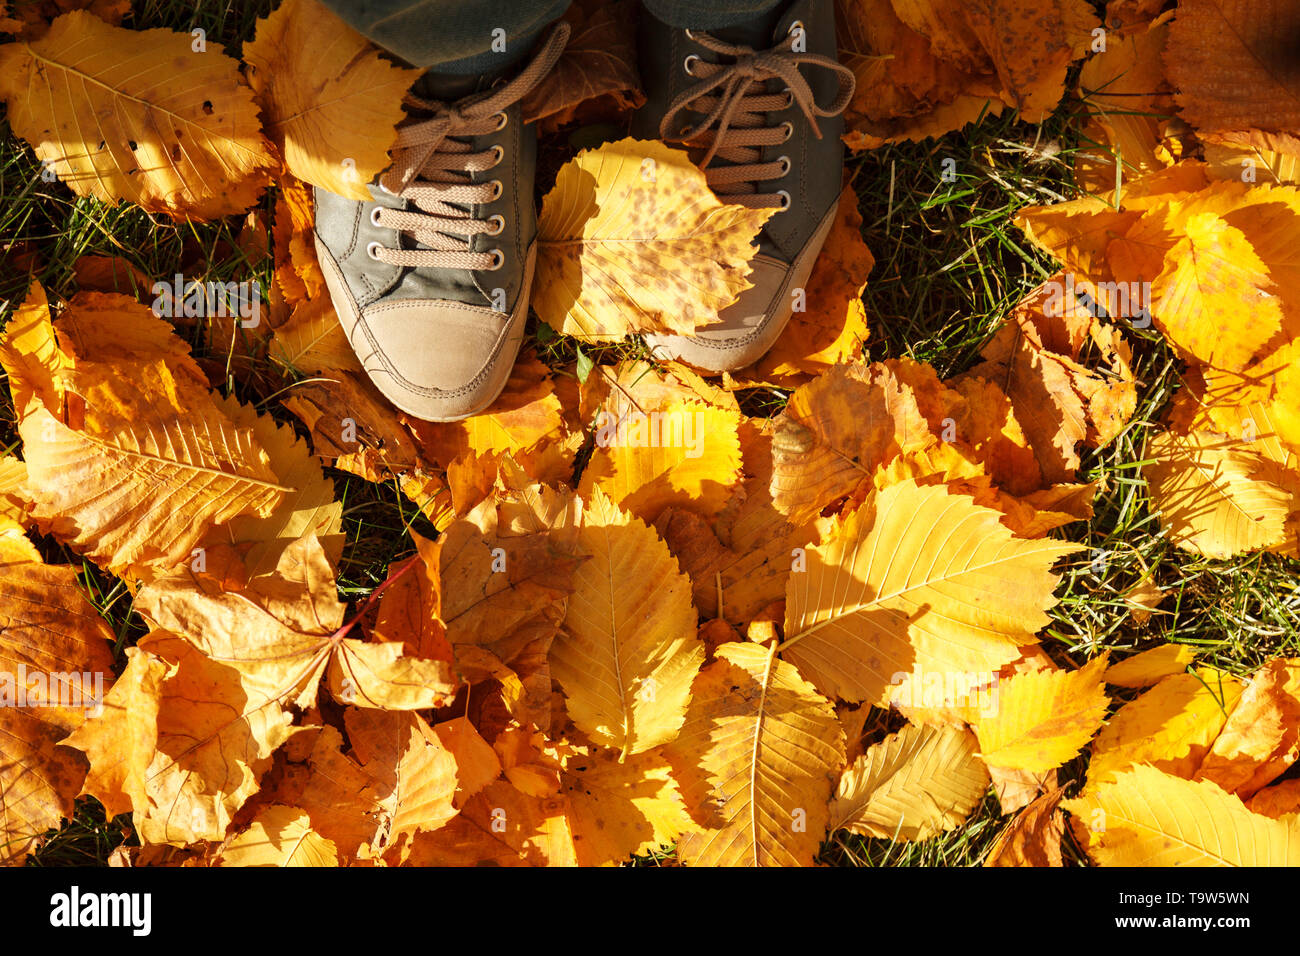 Autumn background, leaves, feet and shoes. Conceptual image of feet in sneakers on yellow autumn leaves. Shoes for nature walks - Stock Image